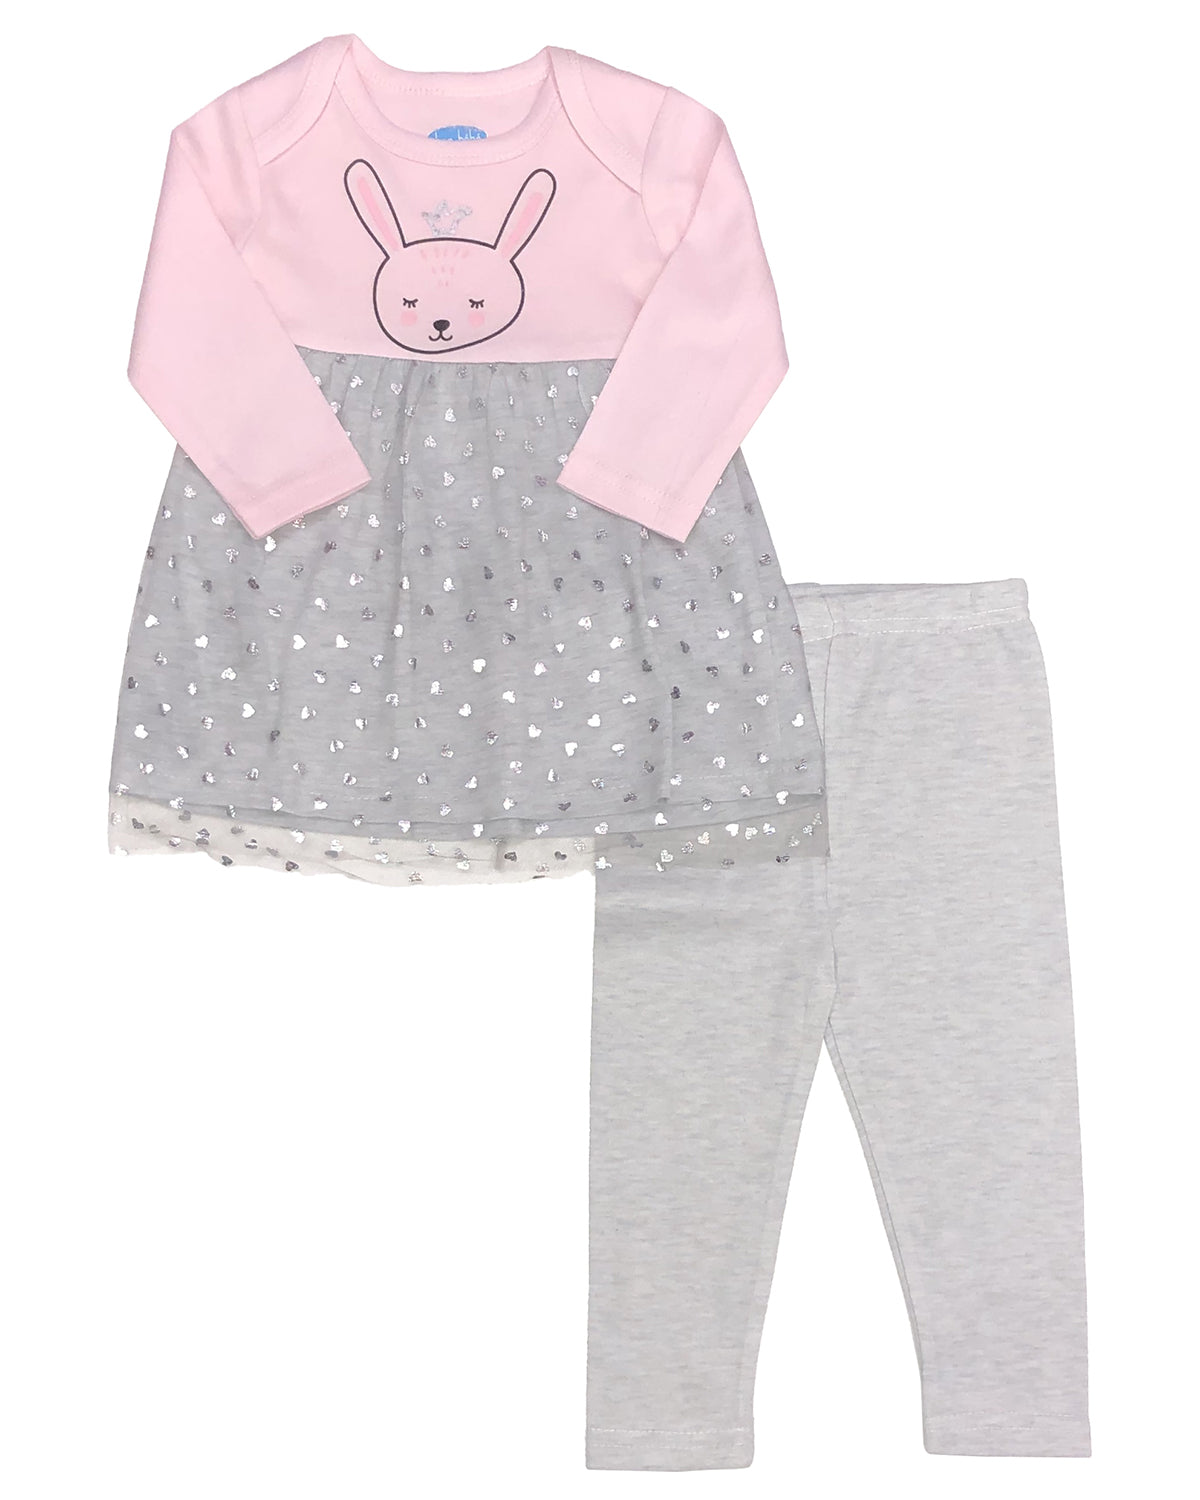 Bon Bebe Infant Girls 2-Piece Legging Set